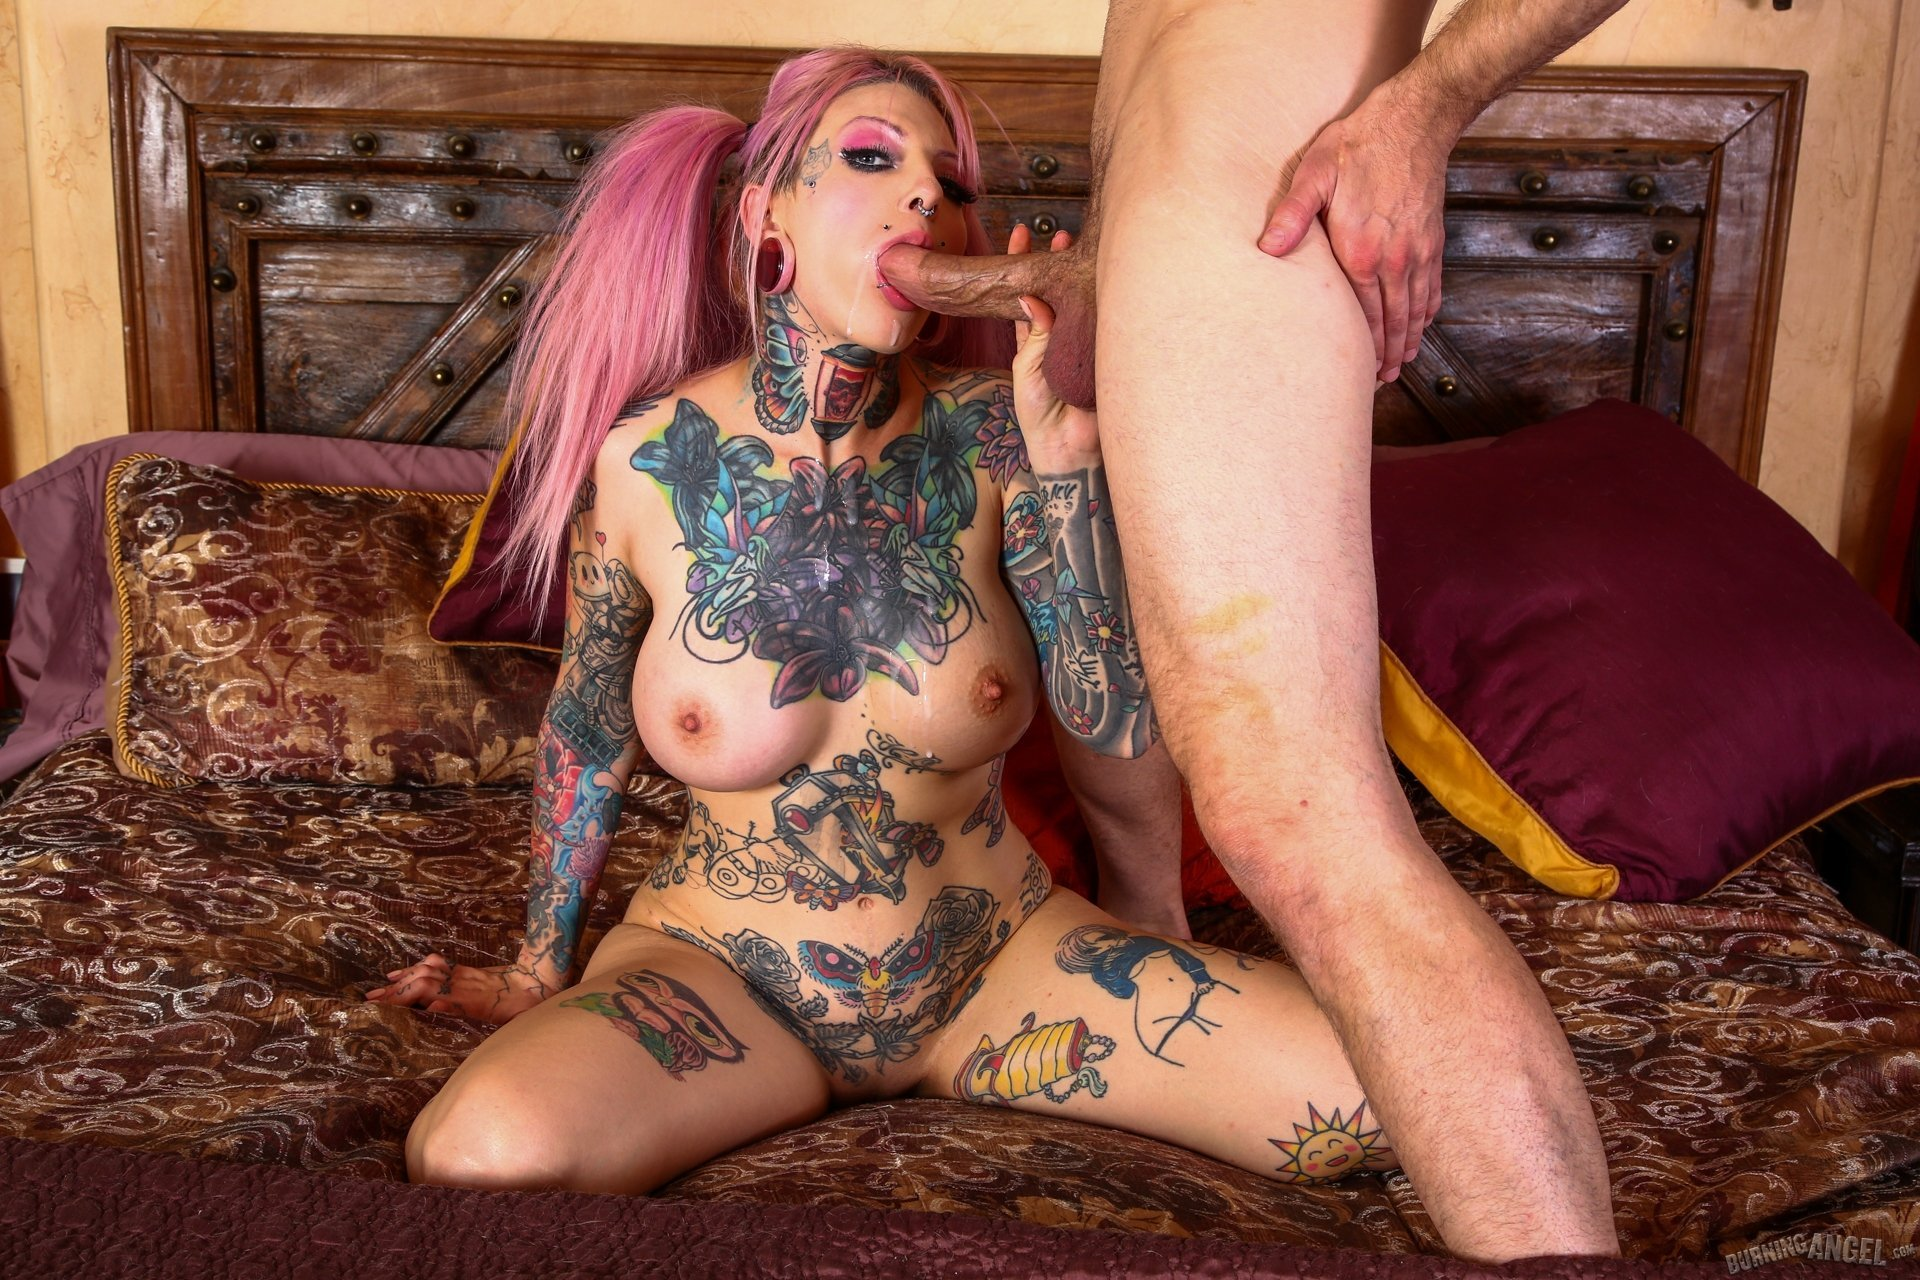 This porn star used to be covered in tattoos